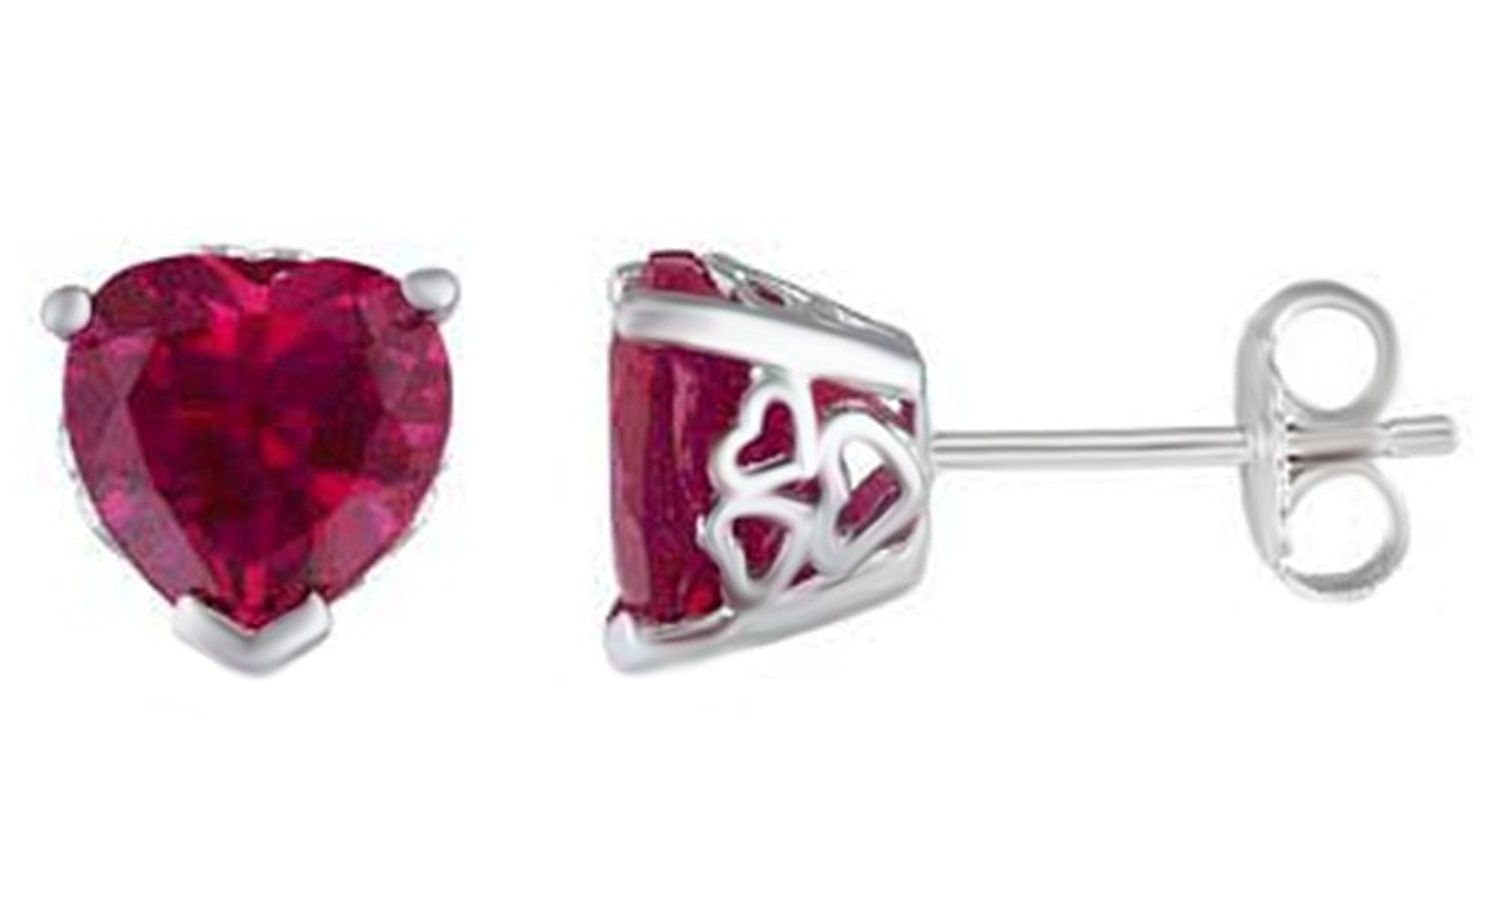 Heart Shaped Simulated Ruby Solitaire Stud Earrings In 14k